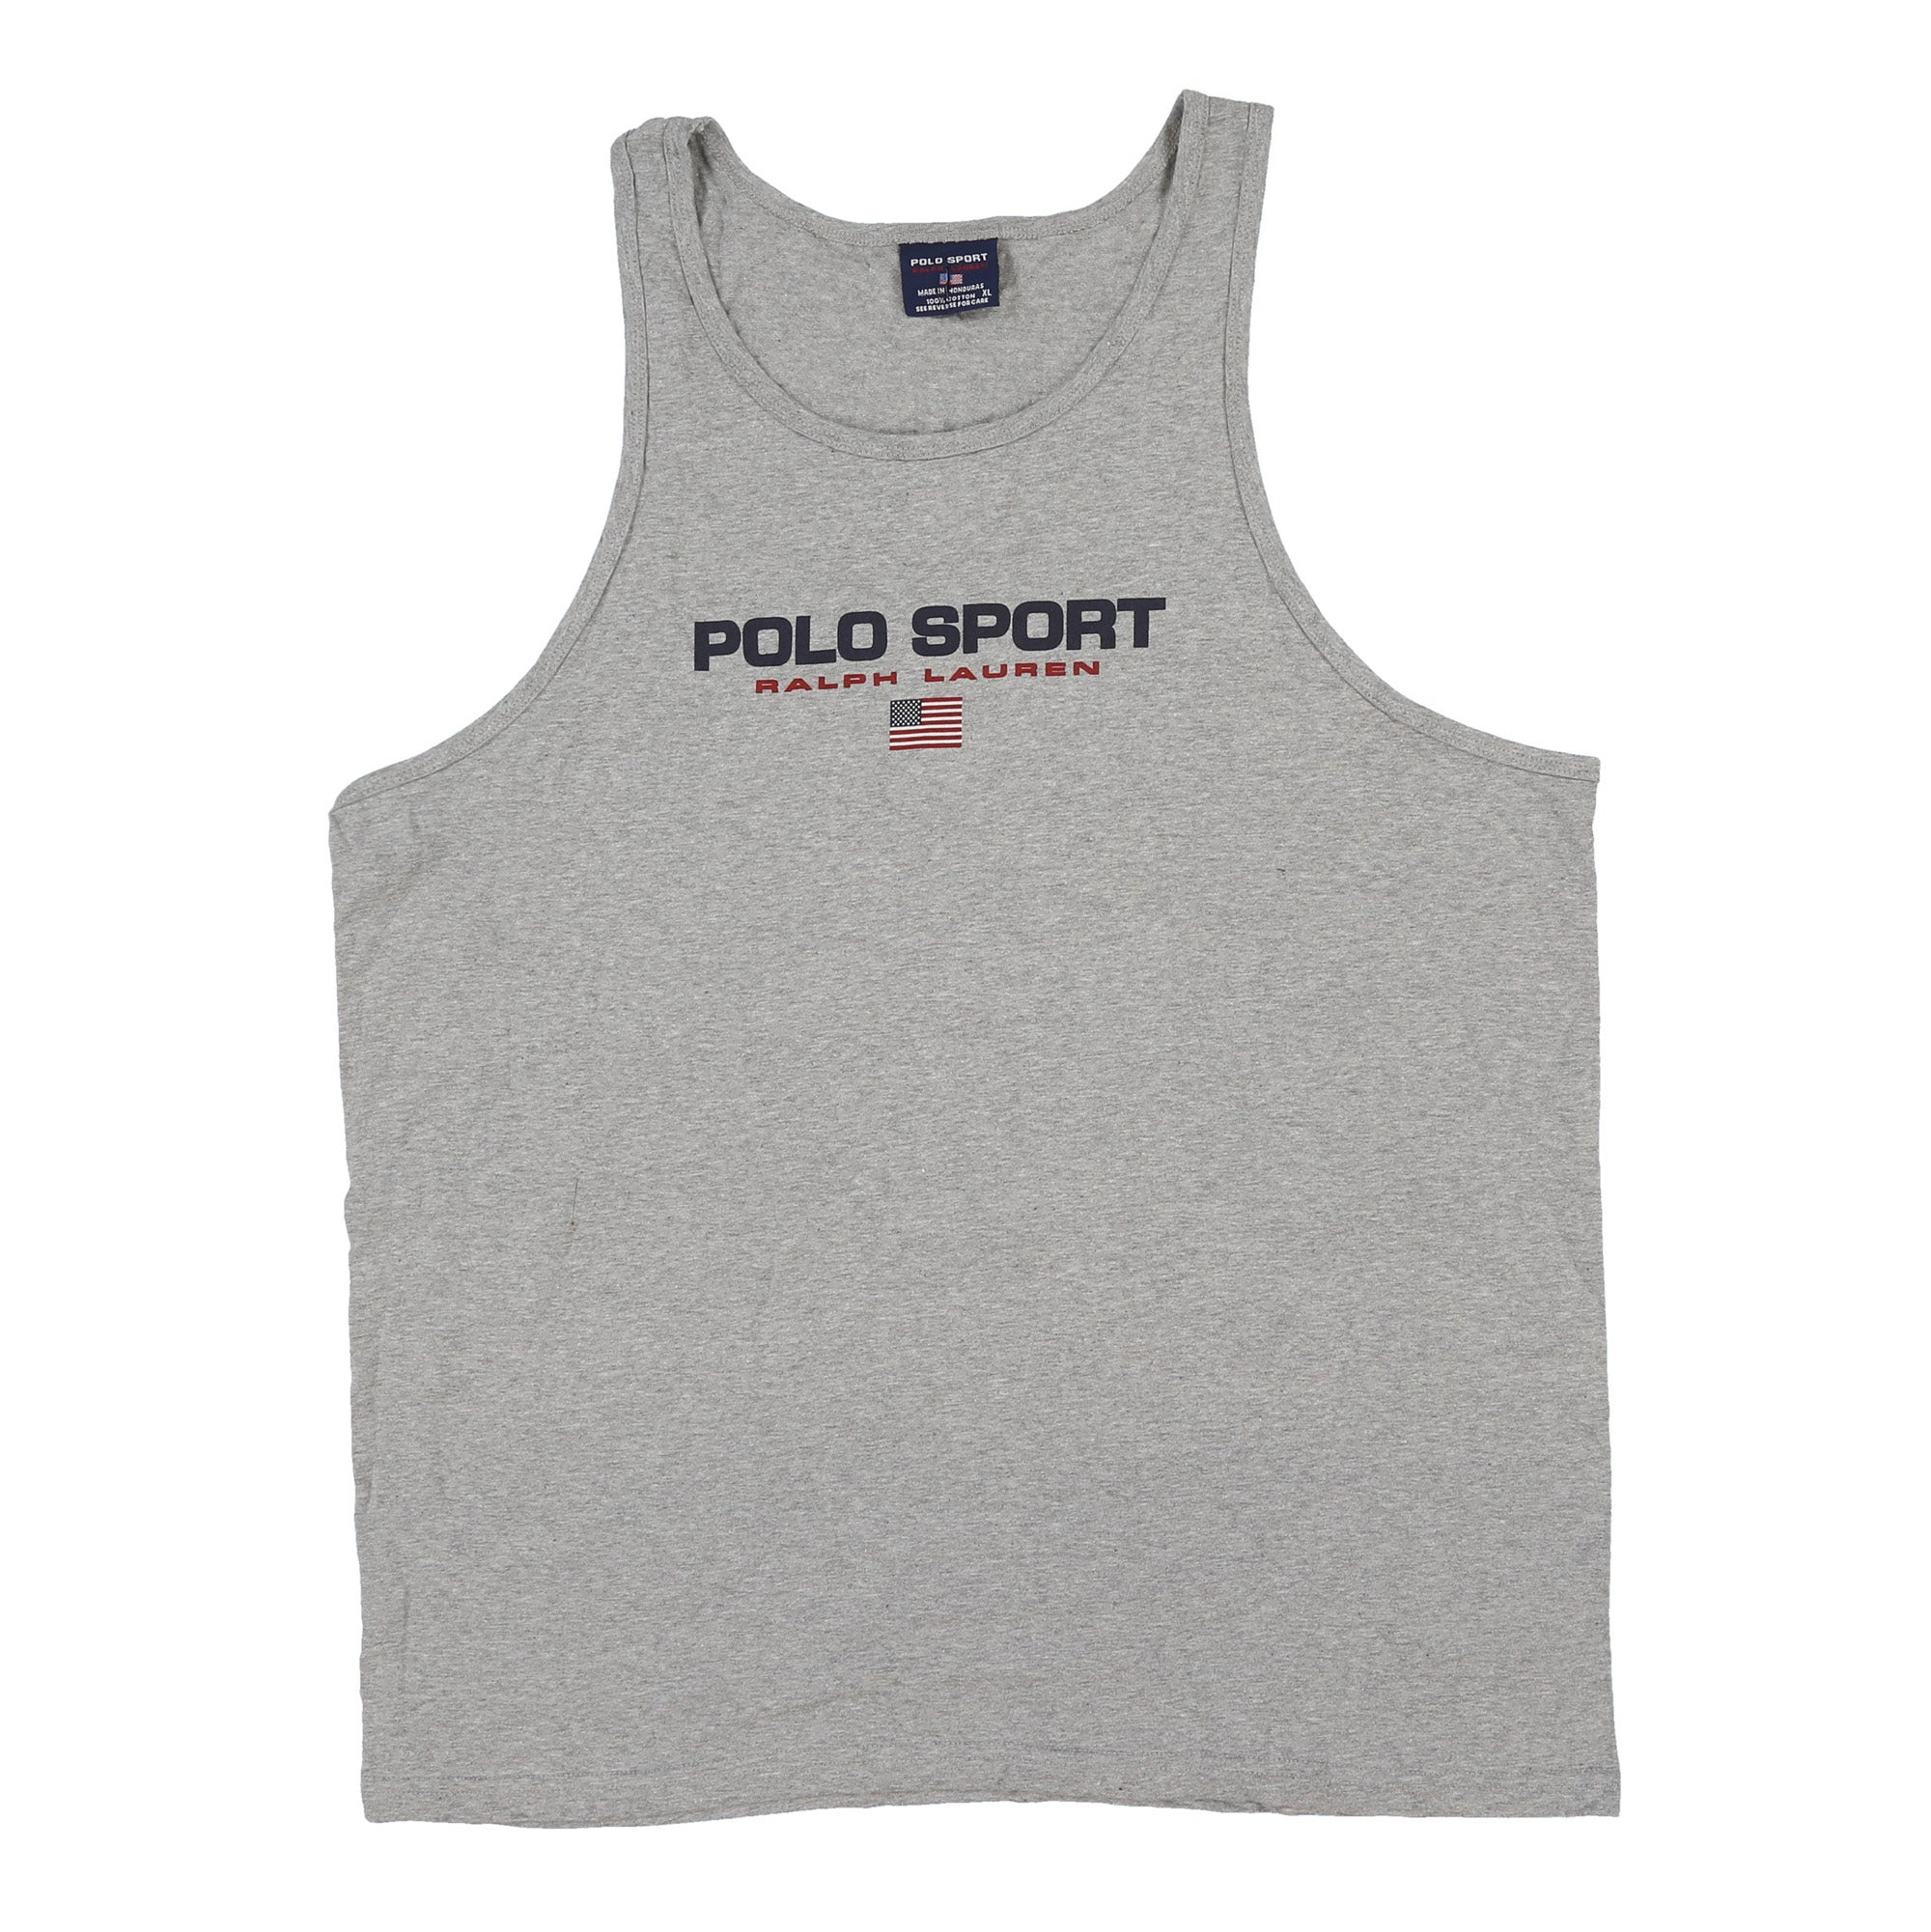 POLO SPORT SPELL OUT TANK TOP // HEATHER GREY